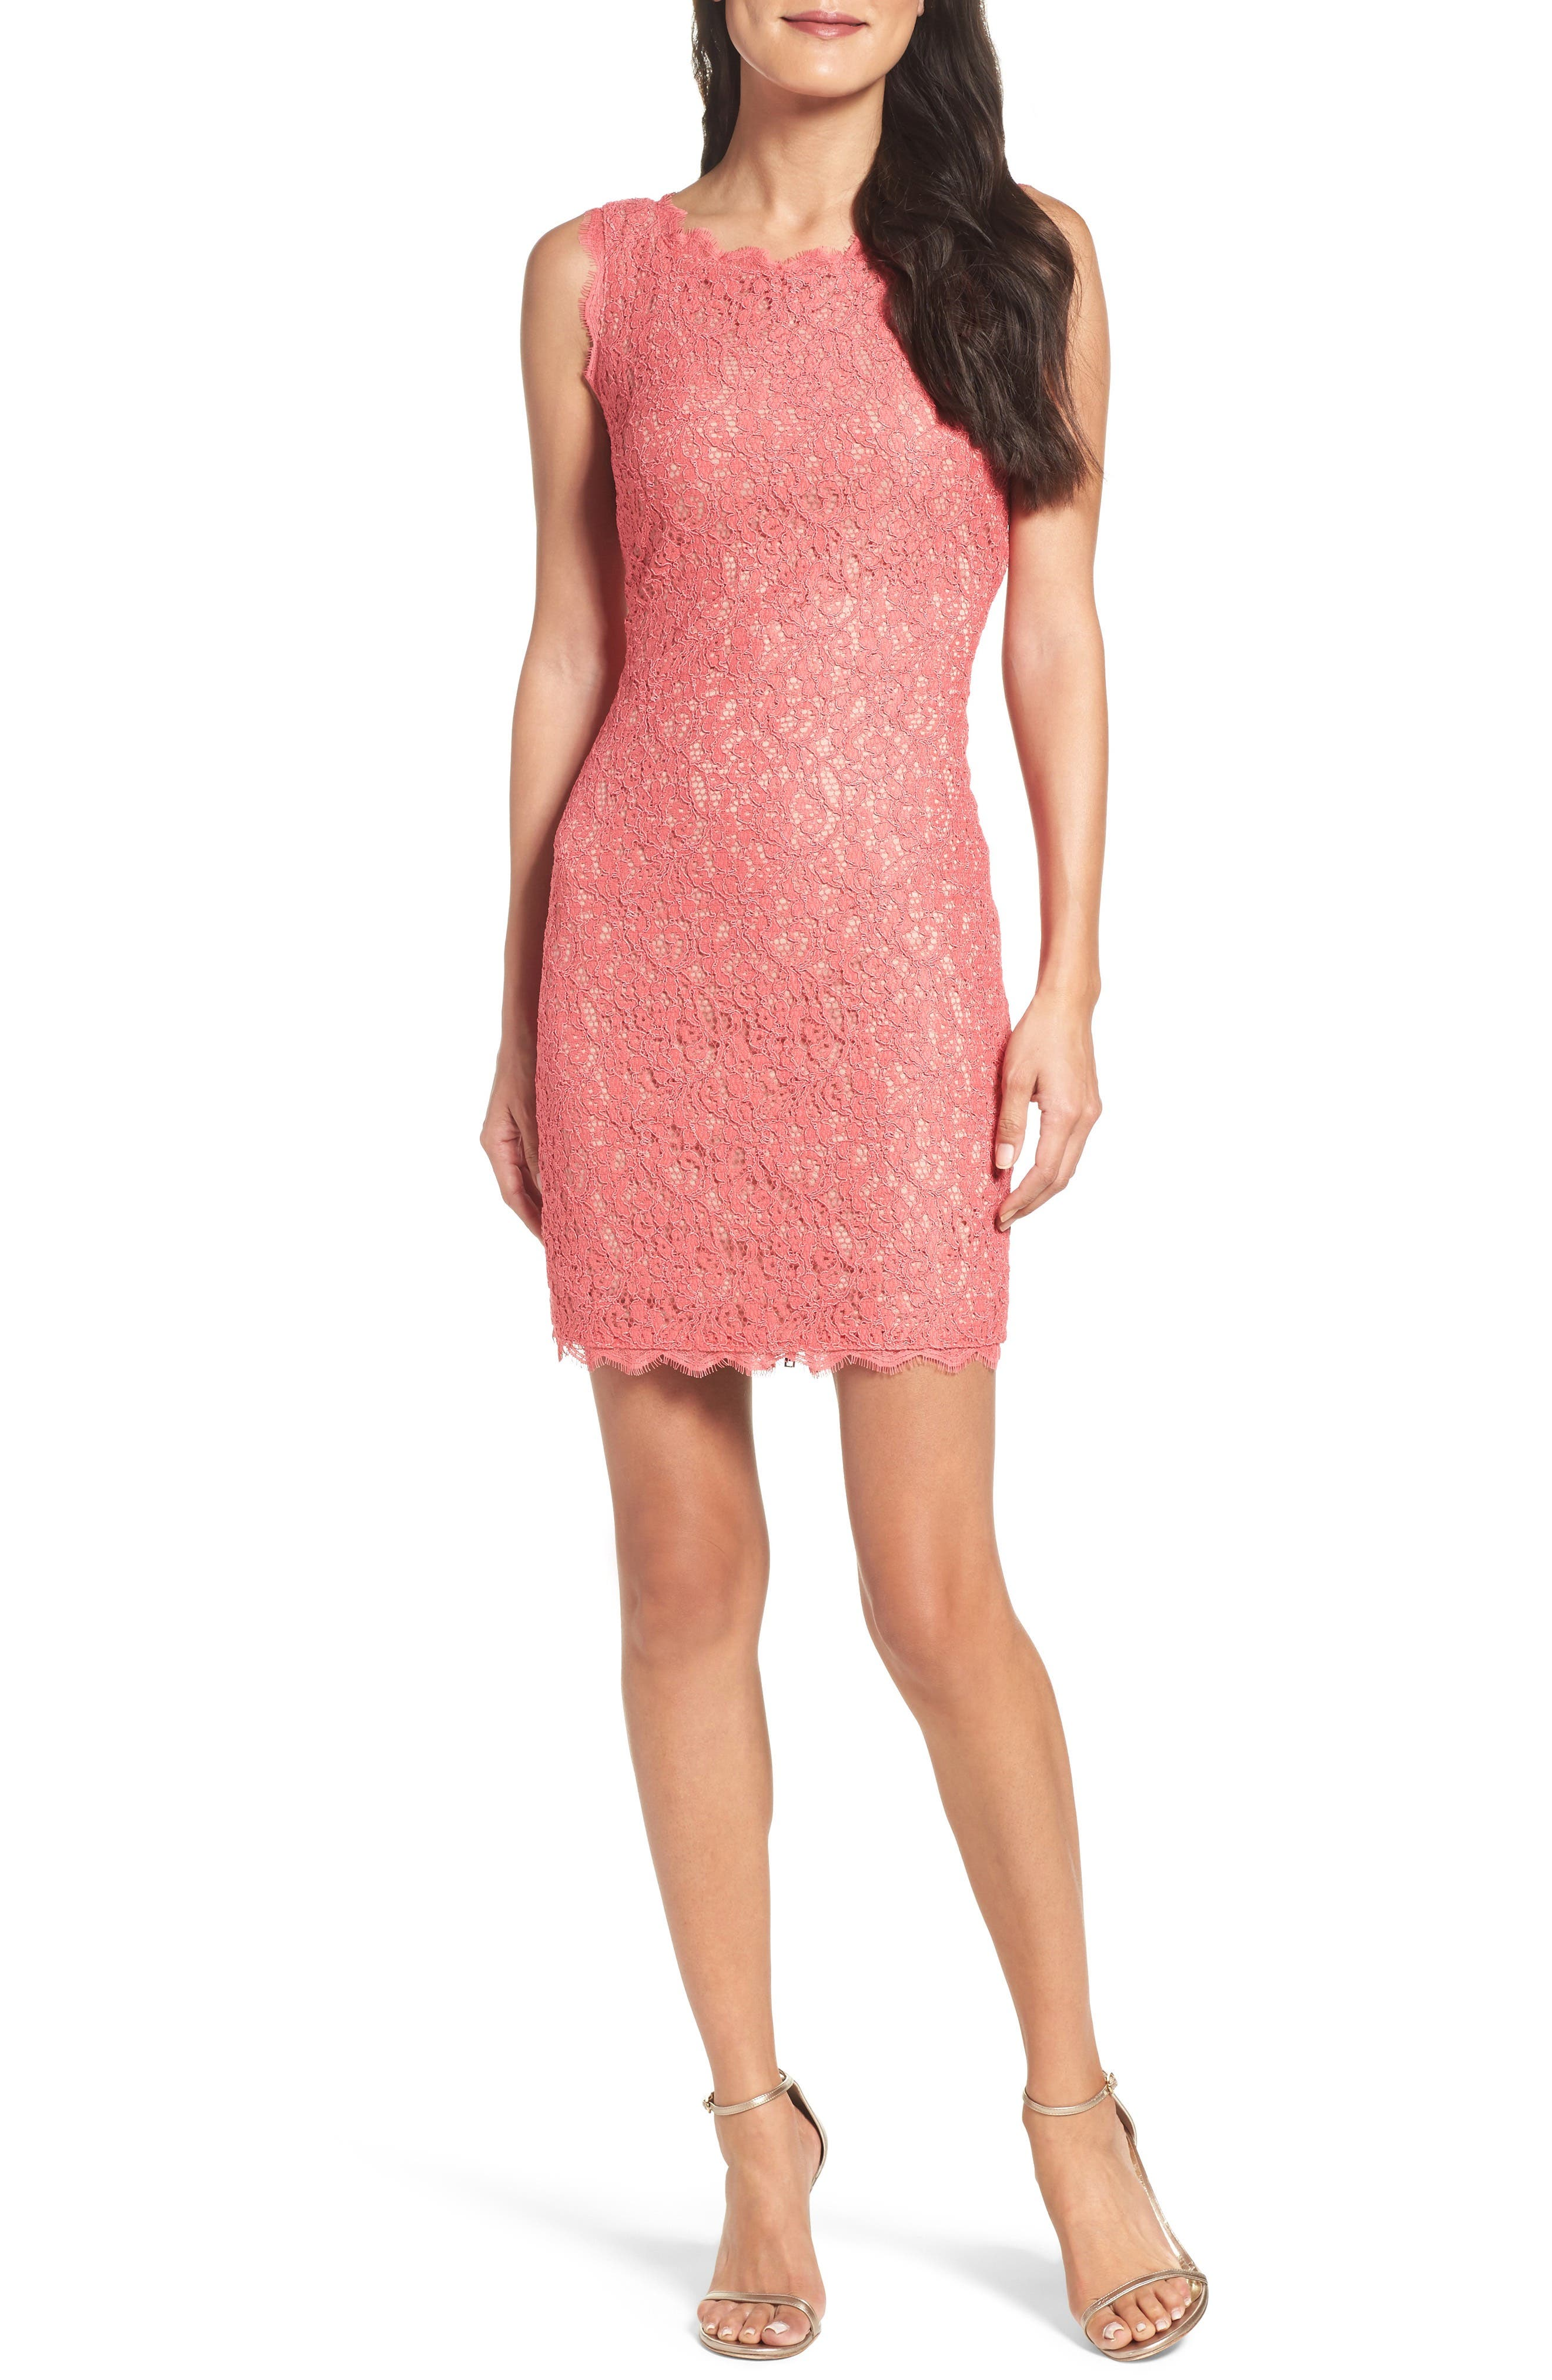 Alternate Image 1 Selected - Adrianna Papell Boatneck Lace Sheath Dress (Regular & Petite)